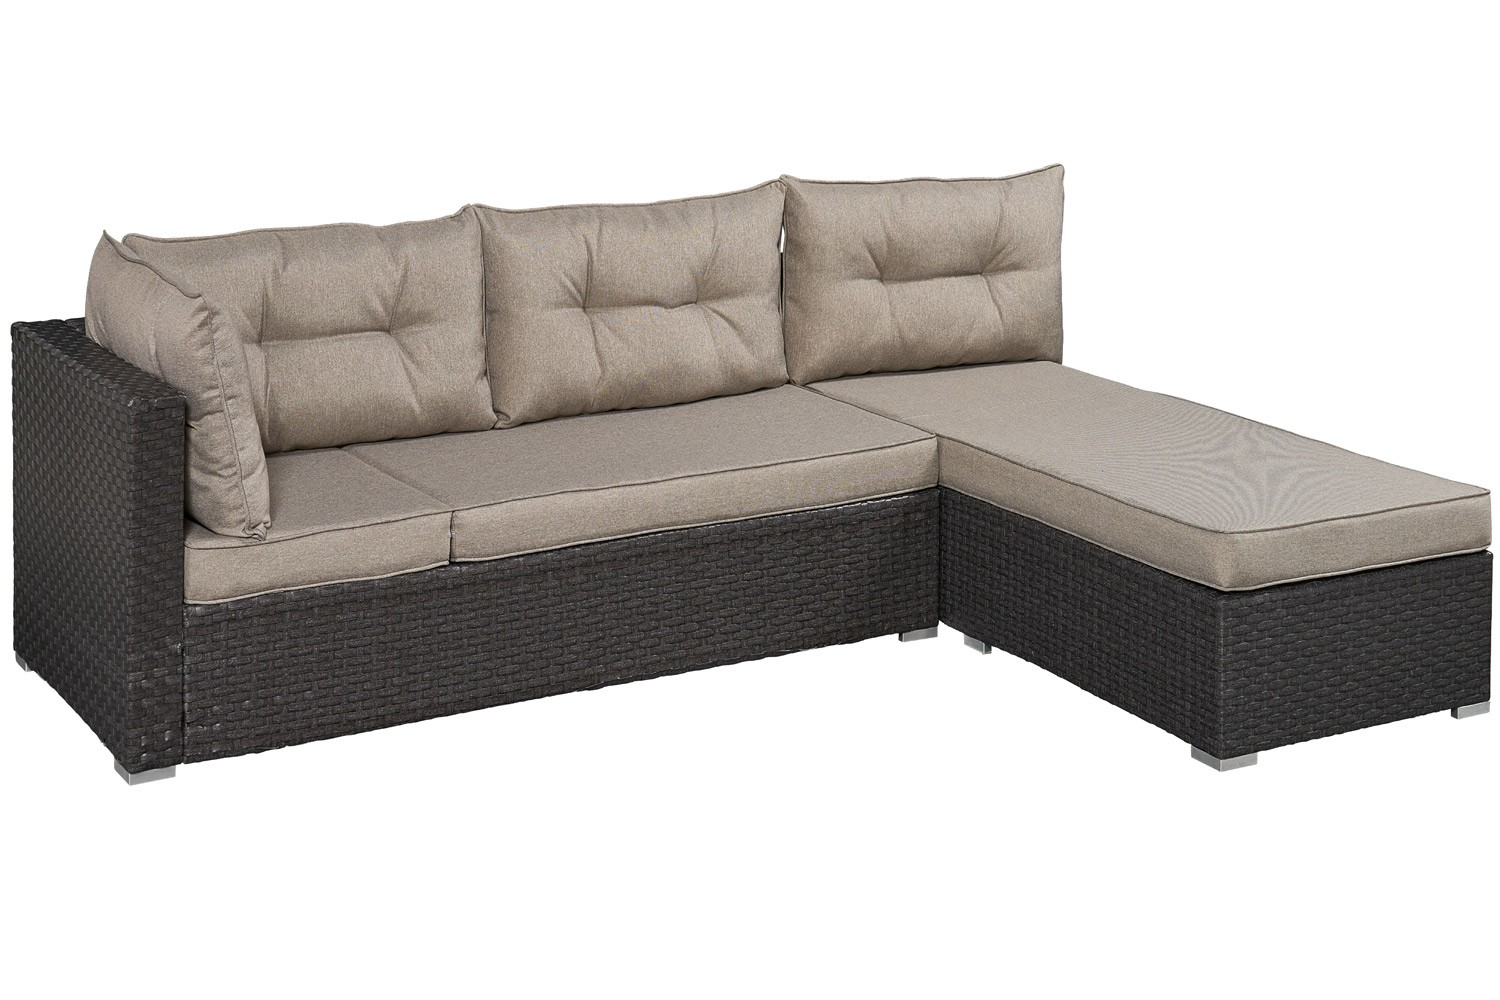 outdoor furniture adronis outdoor futon frame shipping futons to california   futon sofa beds delivered to      rh   thefutonshop